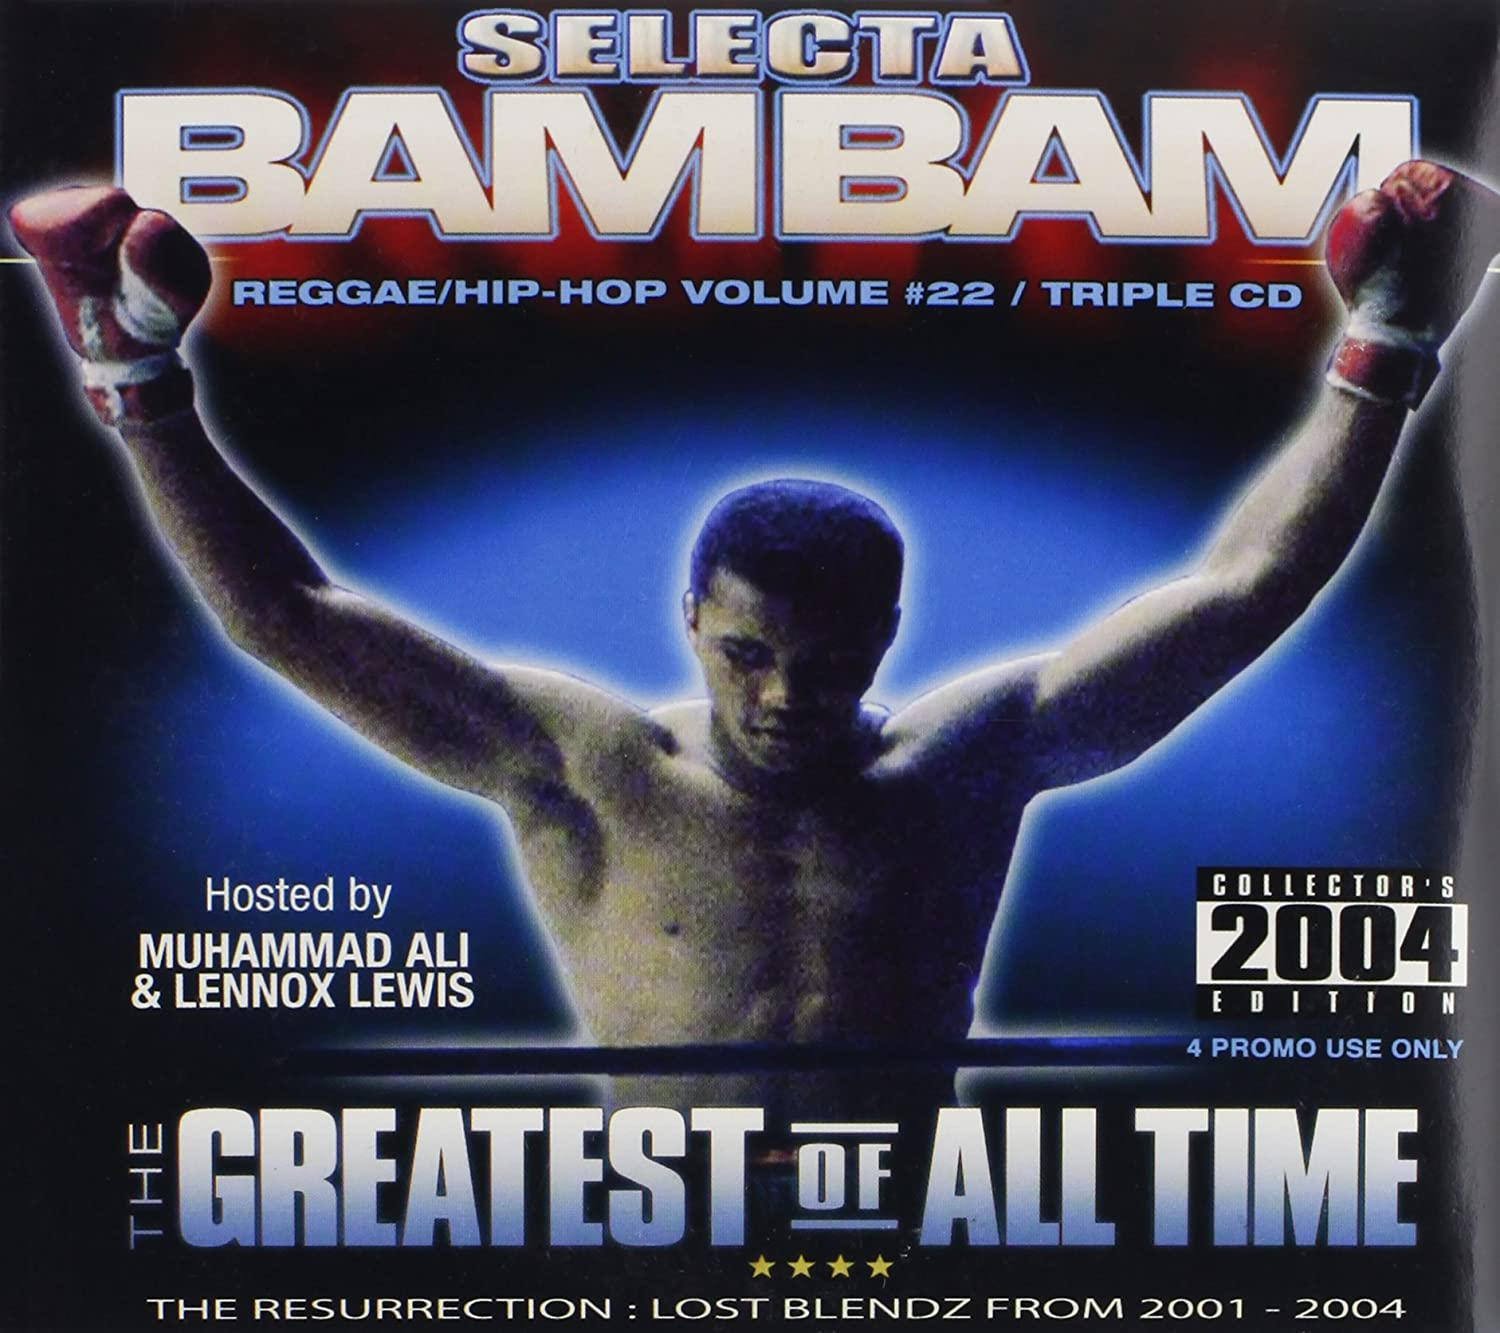 Amazon.com: Selecta Bam Bam presents The Greatest of All ...